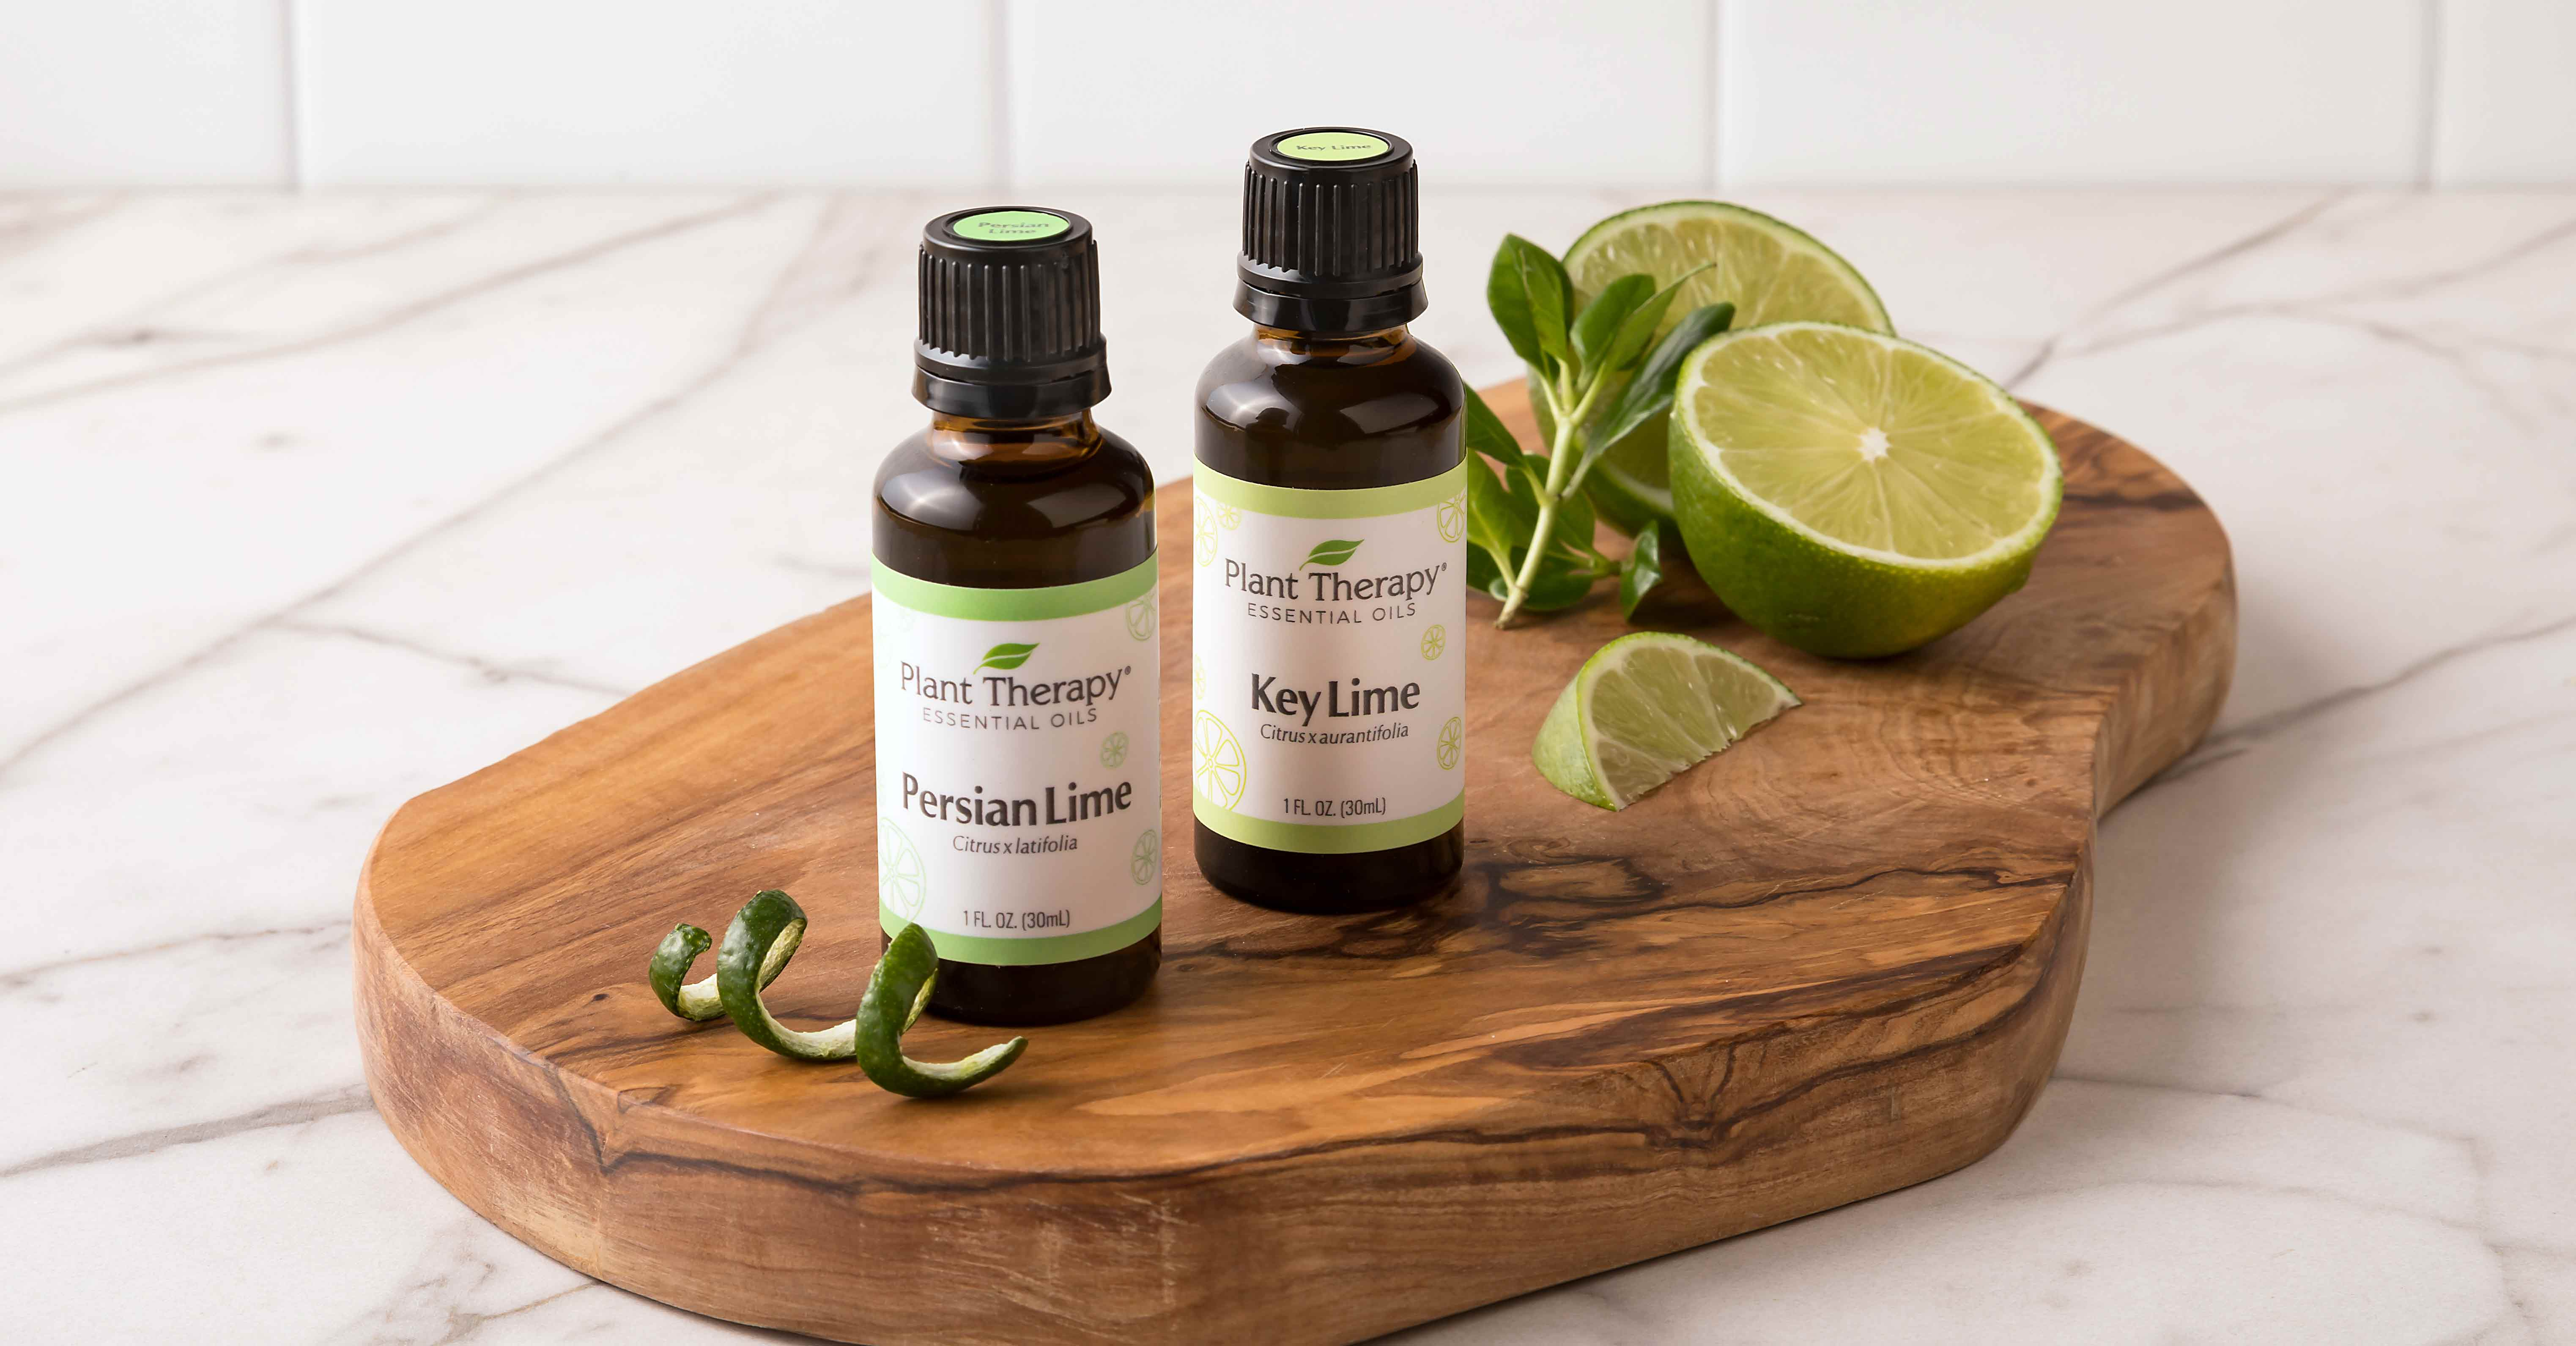 June Oil of the Month: Key Lime & Persian Lime